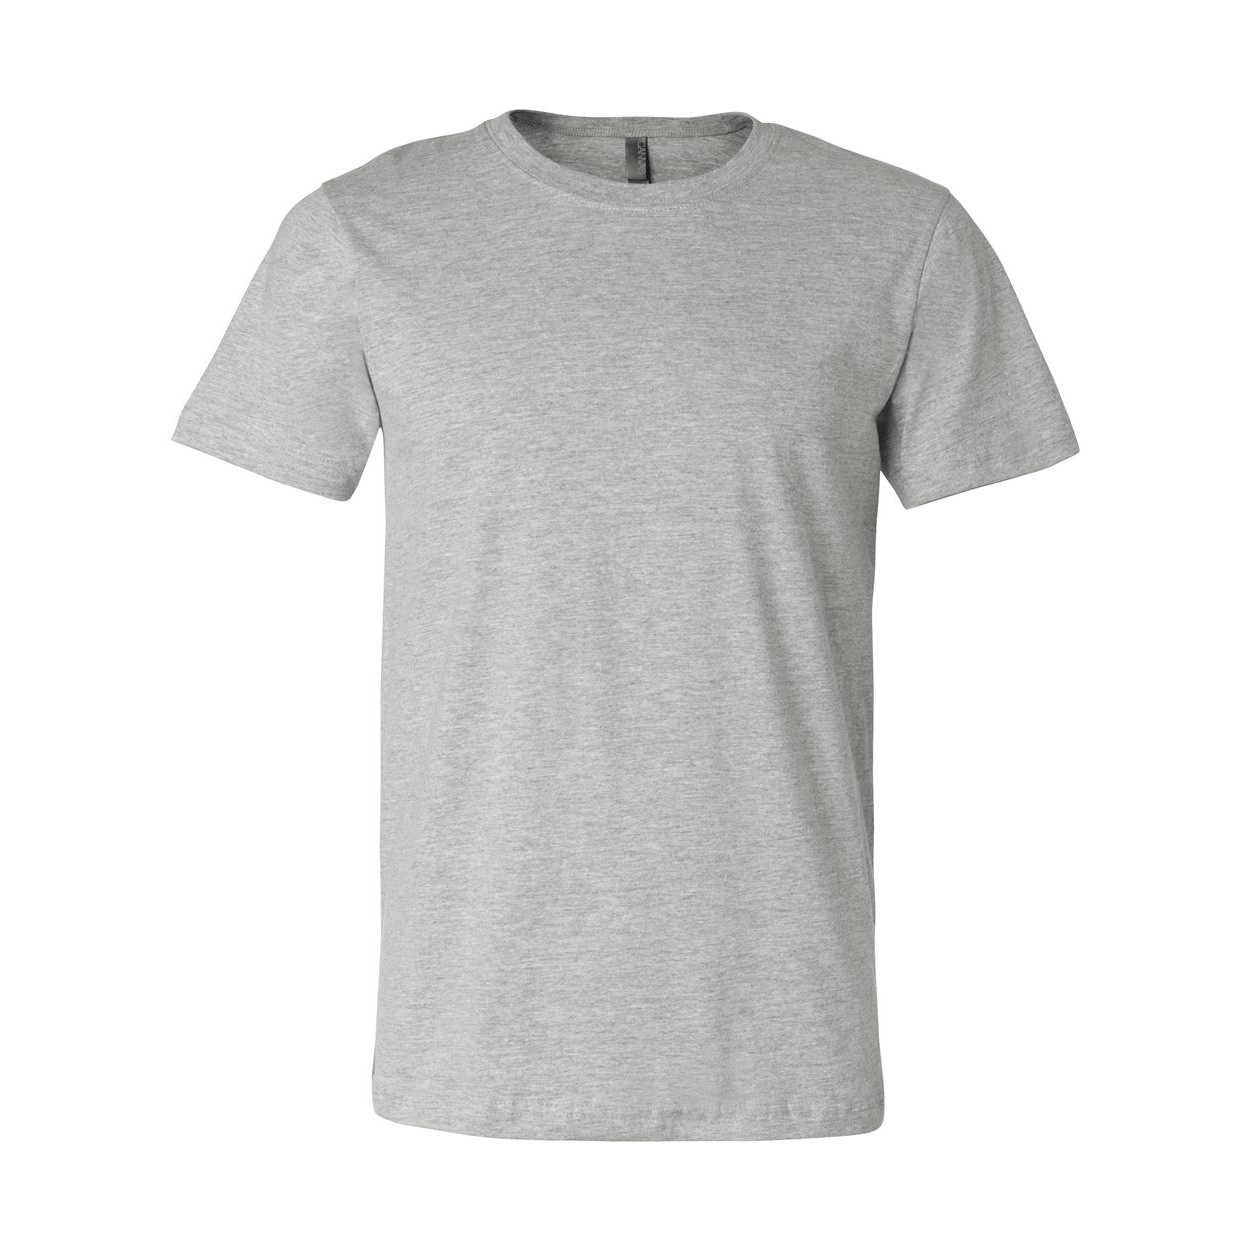 Men of Country Graphic tee - Grey   Trada Marketplace